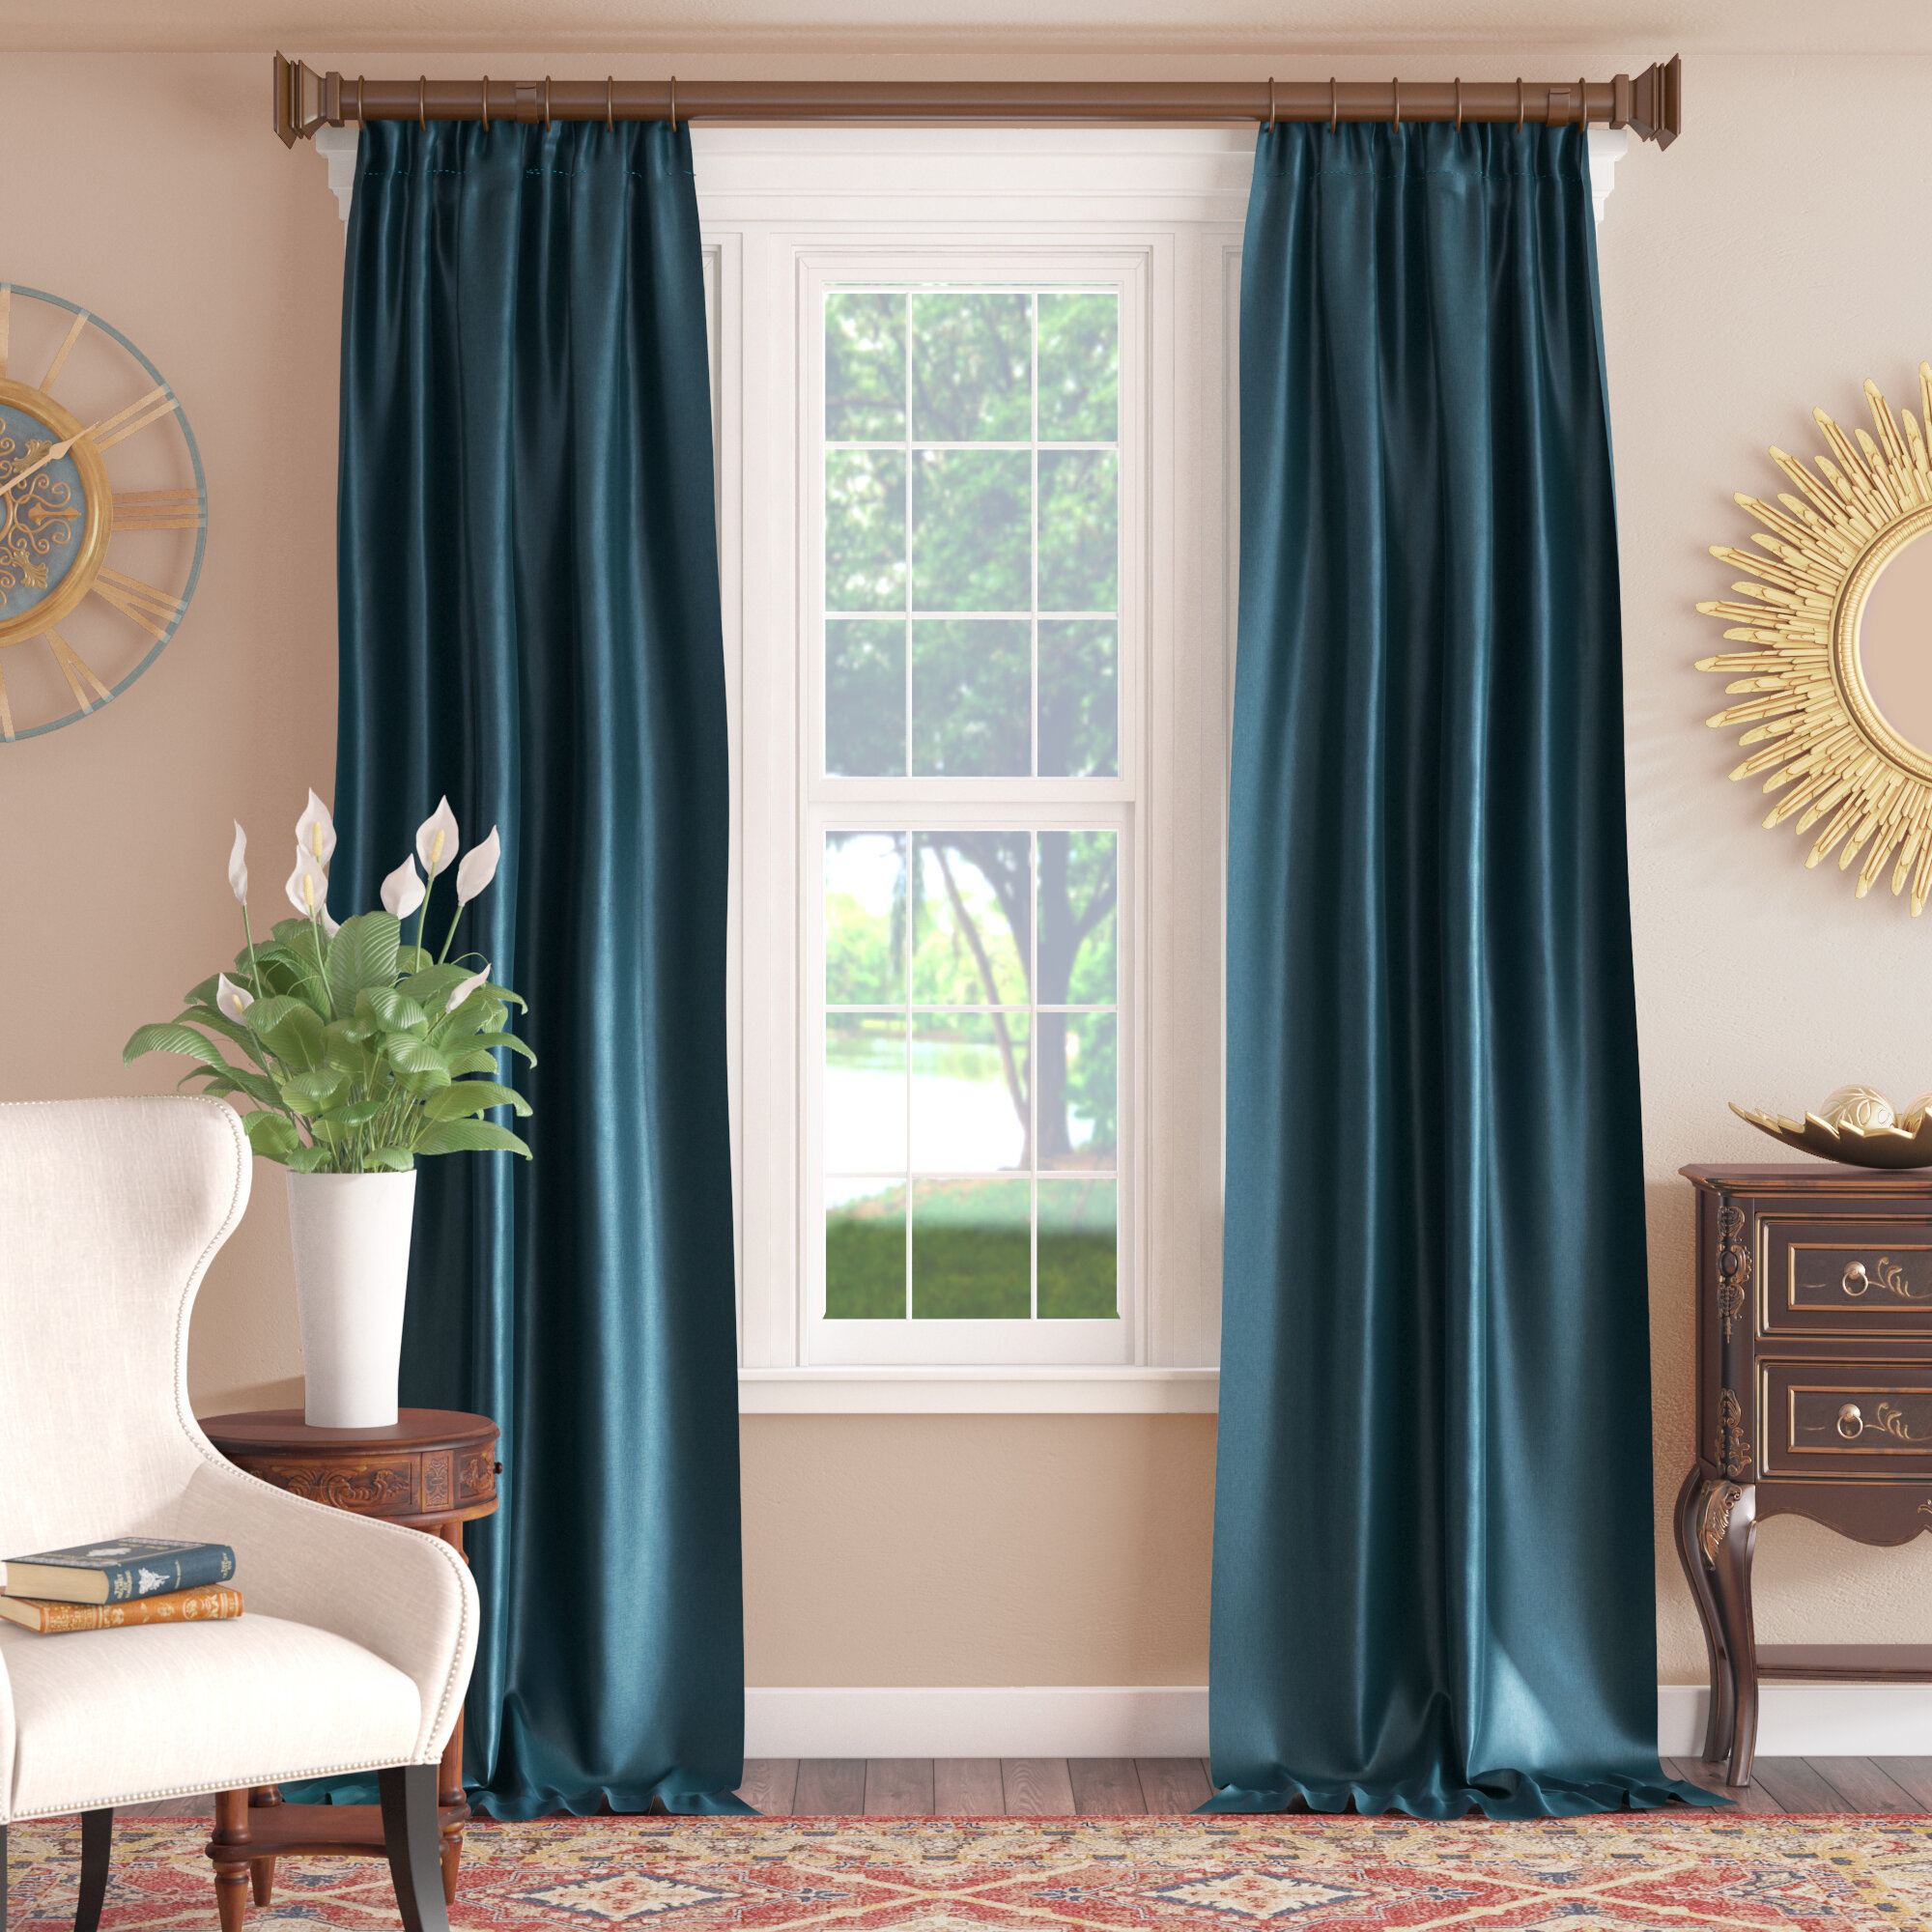 Lochleven Faux Silk Taffeta Solid Room Polyester Darkening Single Curtain Panel With Solid Faux Silk Taffeta Graphite Single Curtain Panels (View 25 of 30)